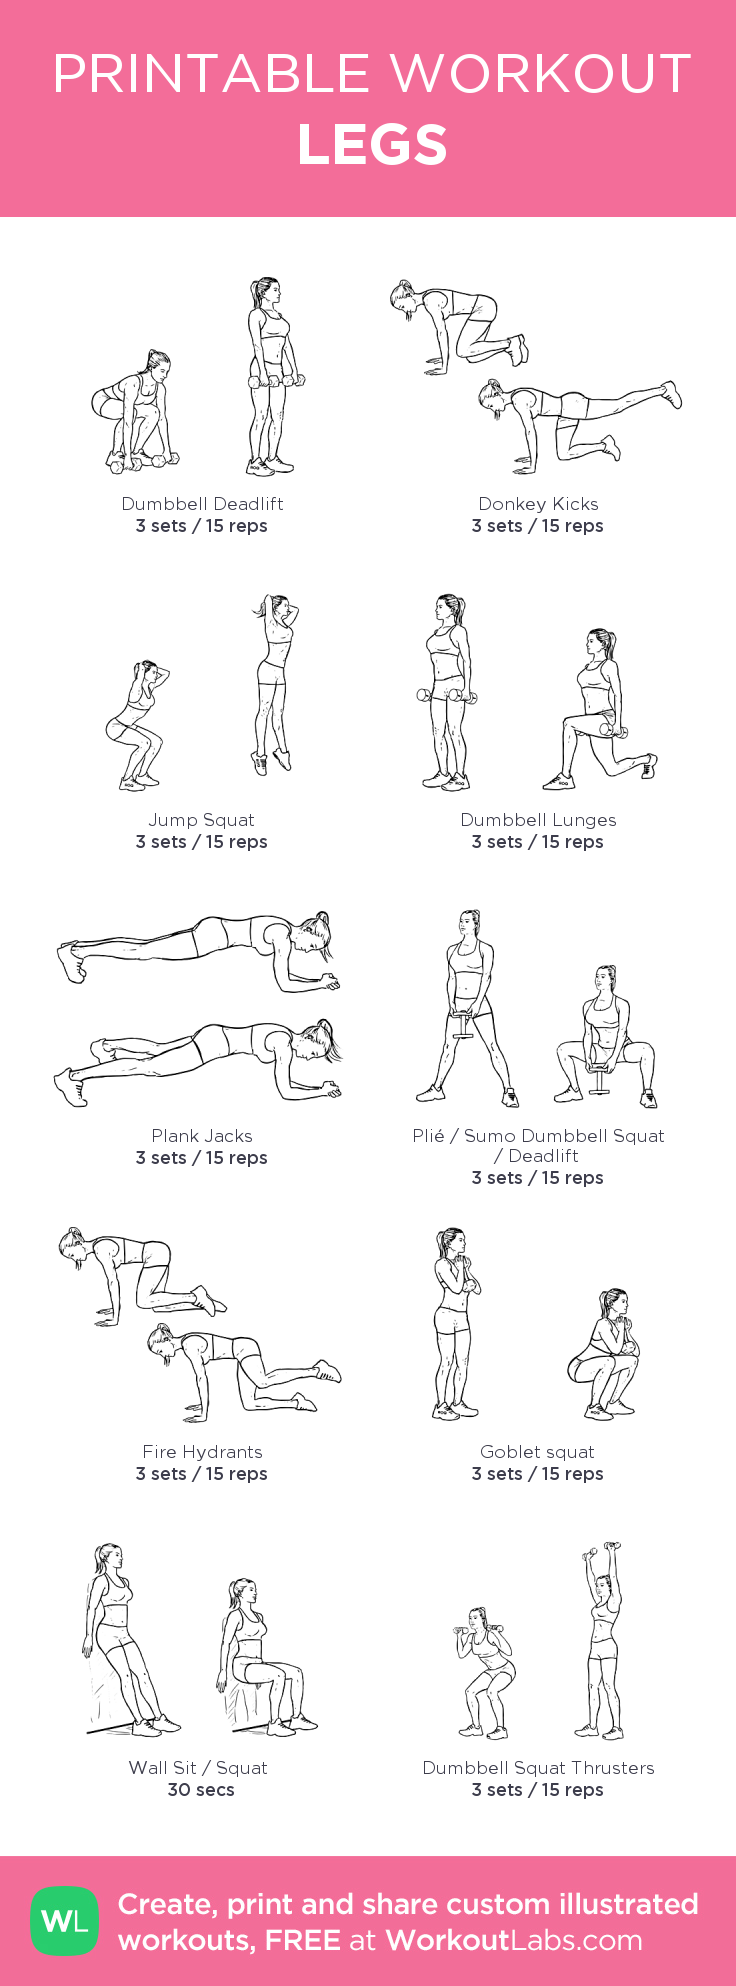 LEGS: my custom printable workout by @WorkoutLabs #workoutlabs #customworkout